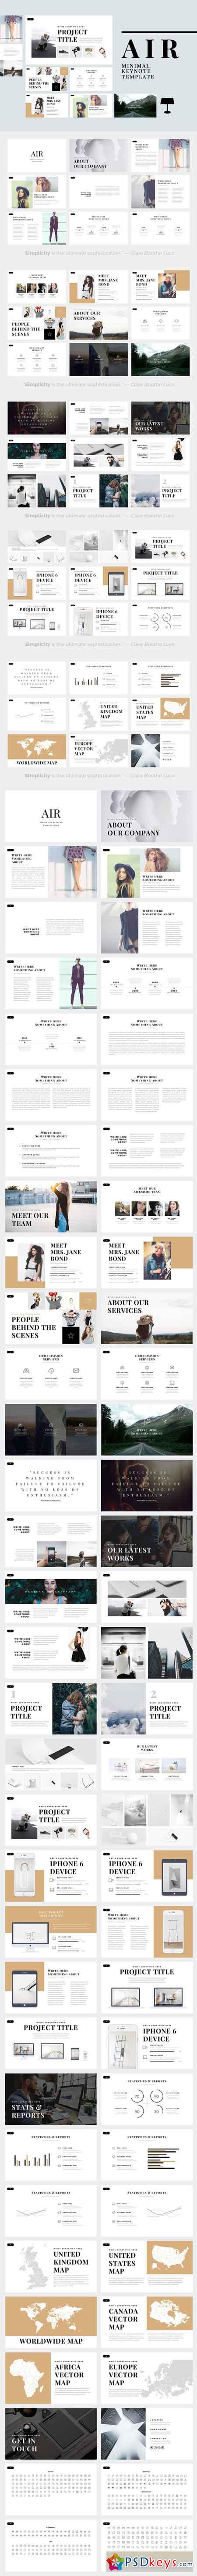 Air Minimal Keynote Template 625863